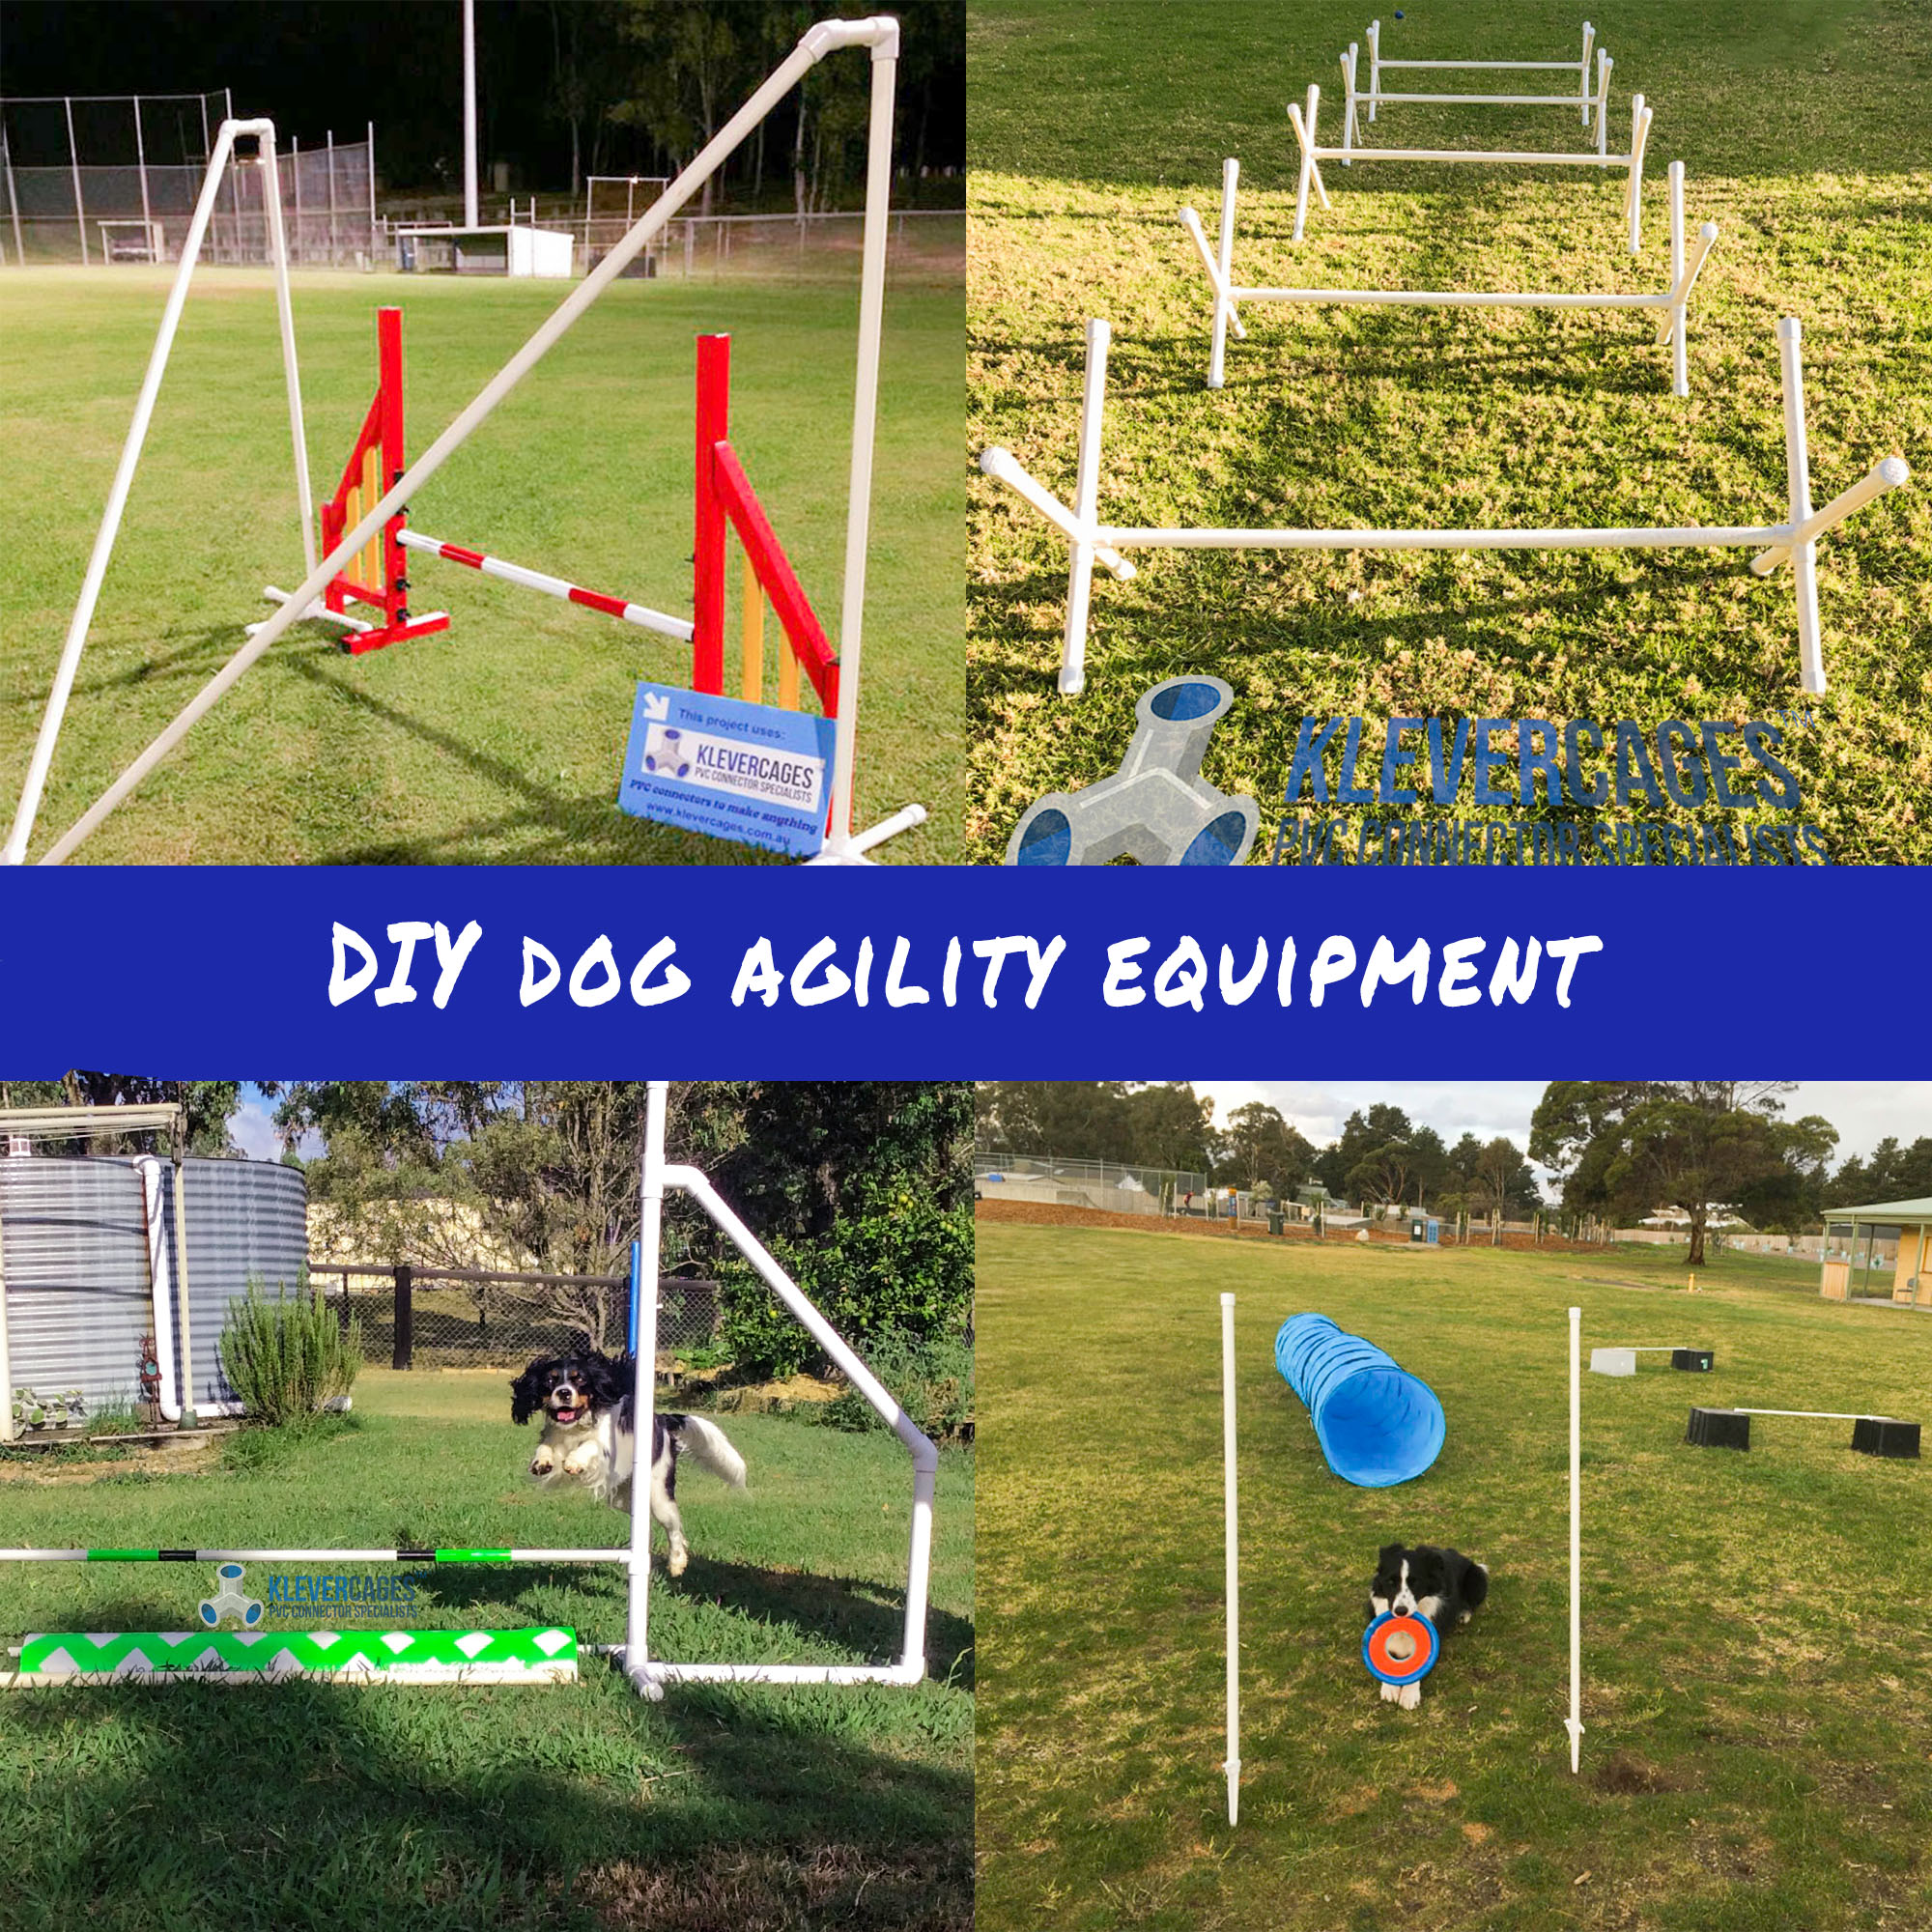 DIY dog agility equipment including dog jumps, weave poles spider frames and more built with PVC connectors and pipe from Klever Cages